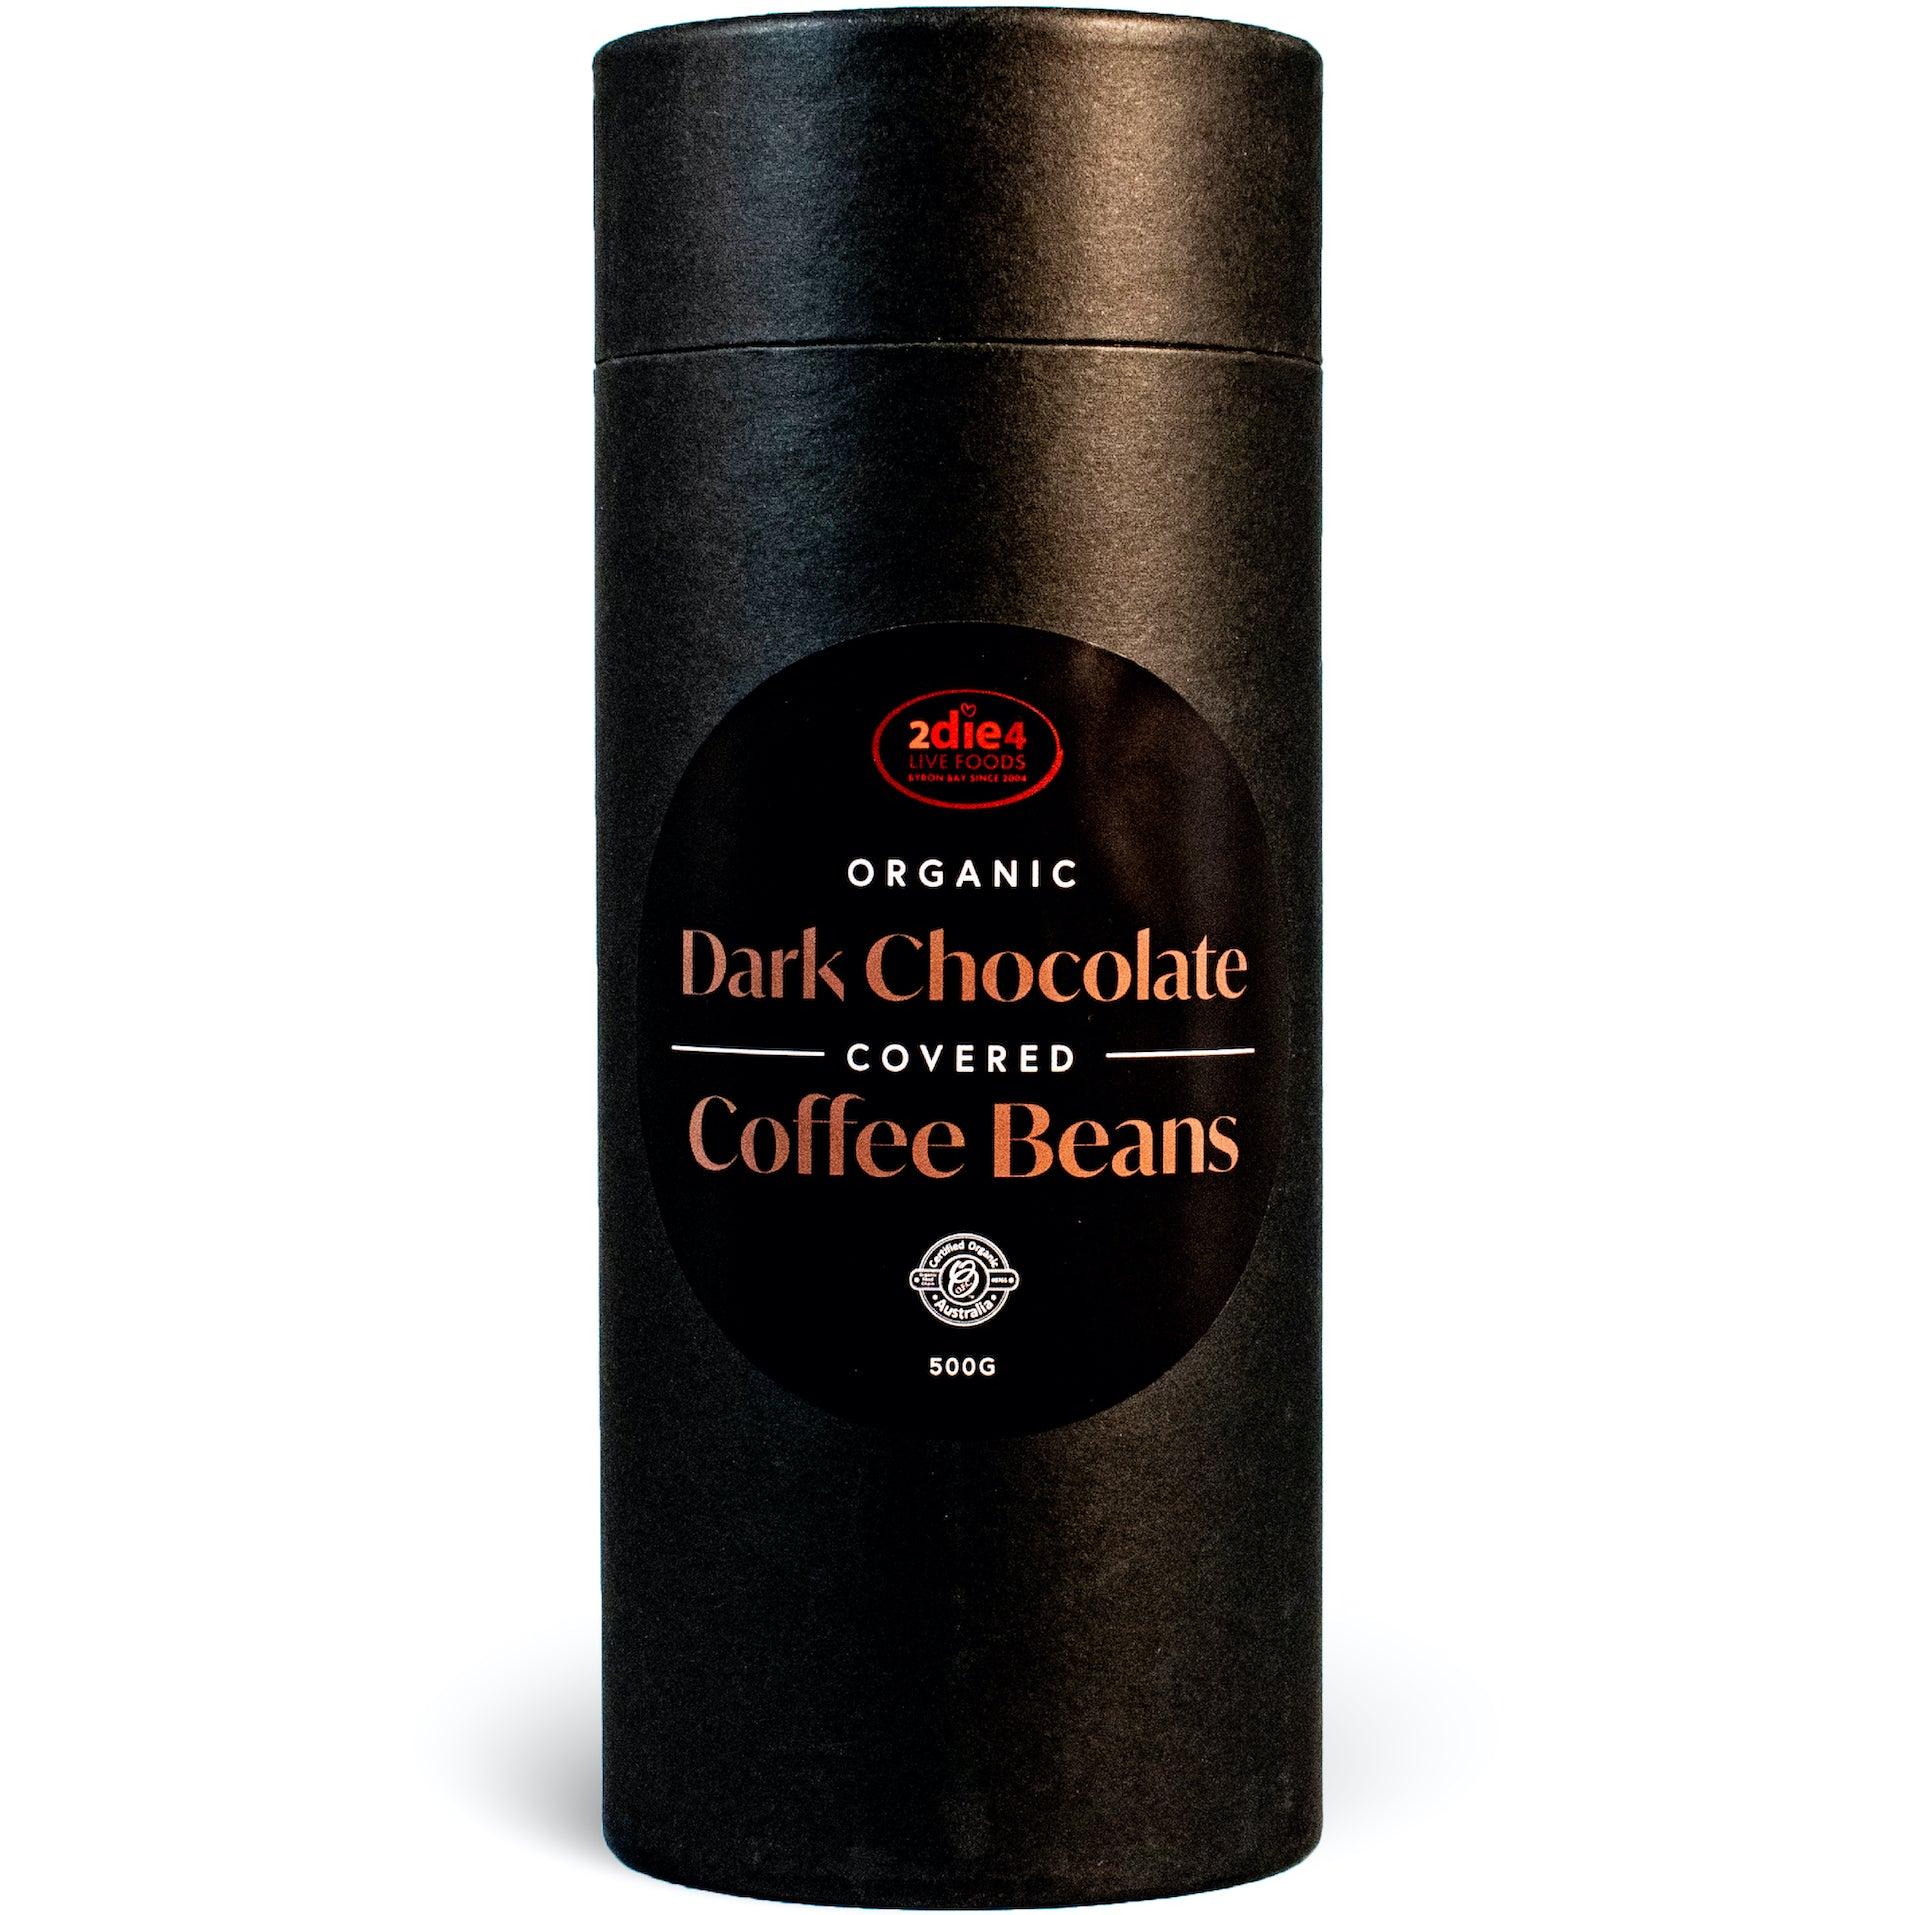 Organic Dark Chocolate Coated Coffee Beans - 2die4livefoods